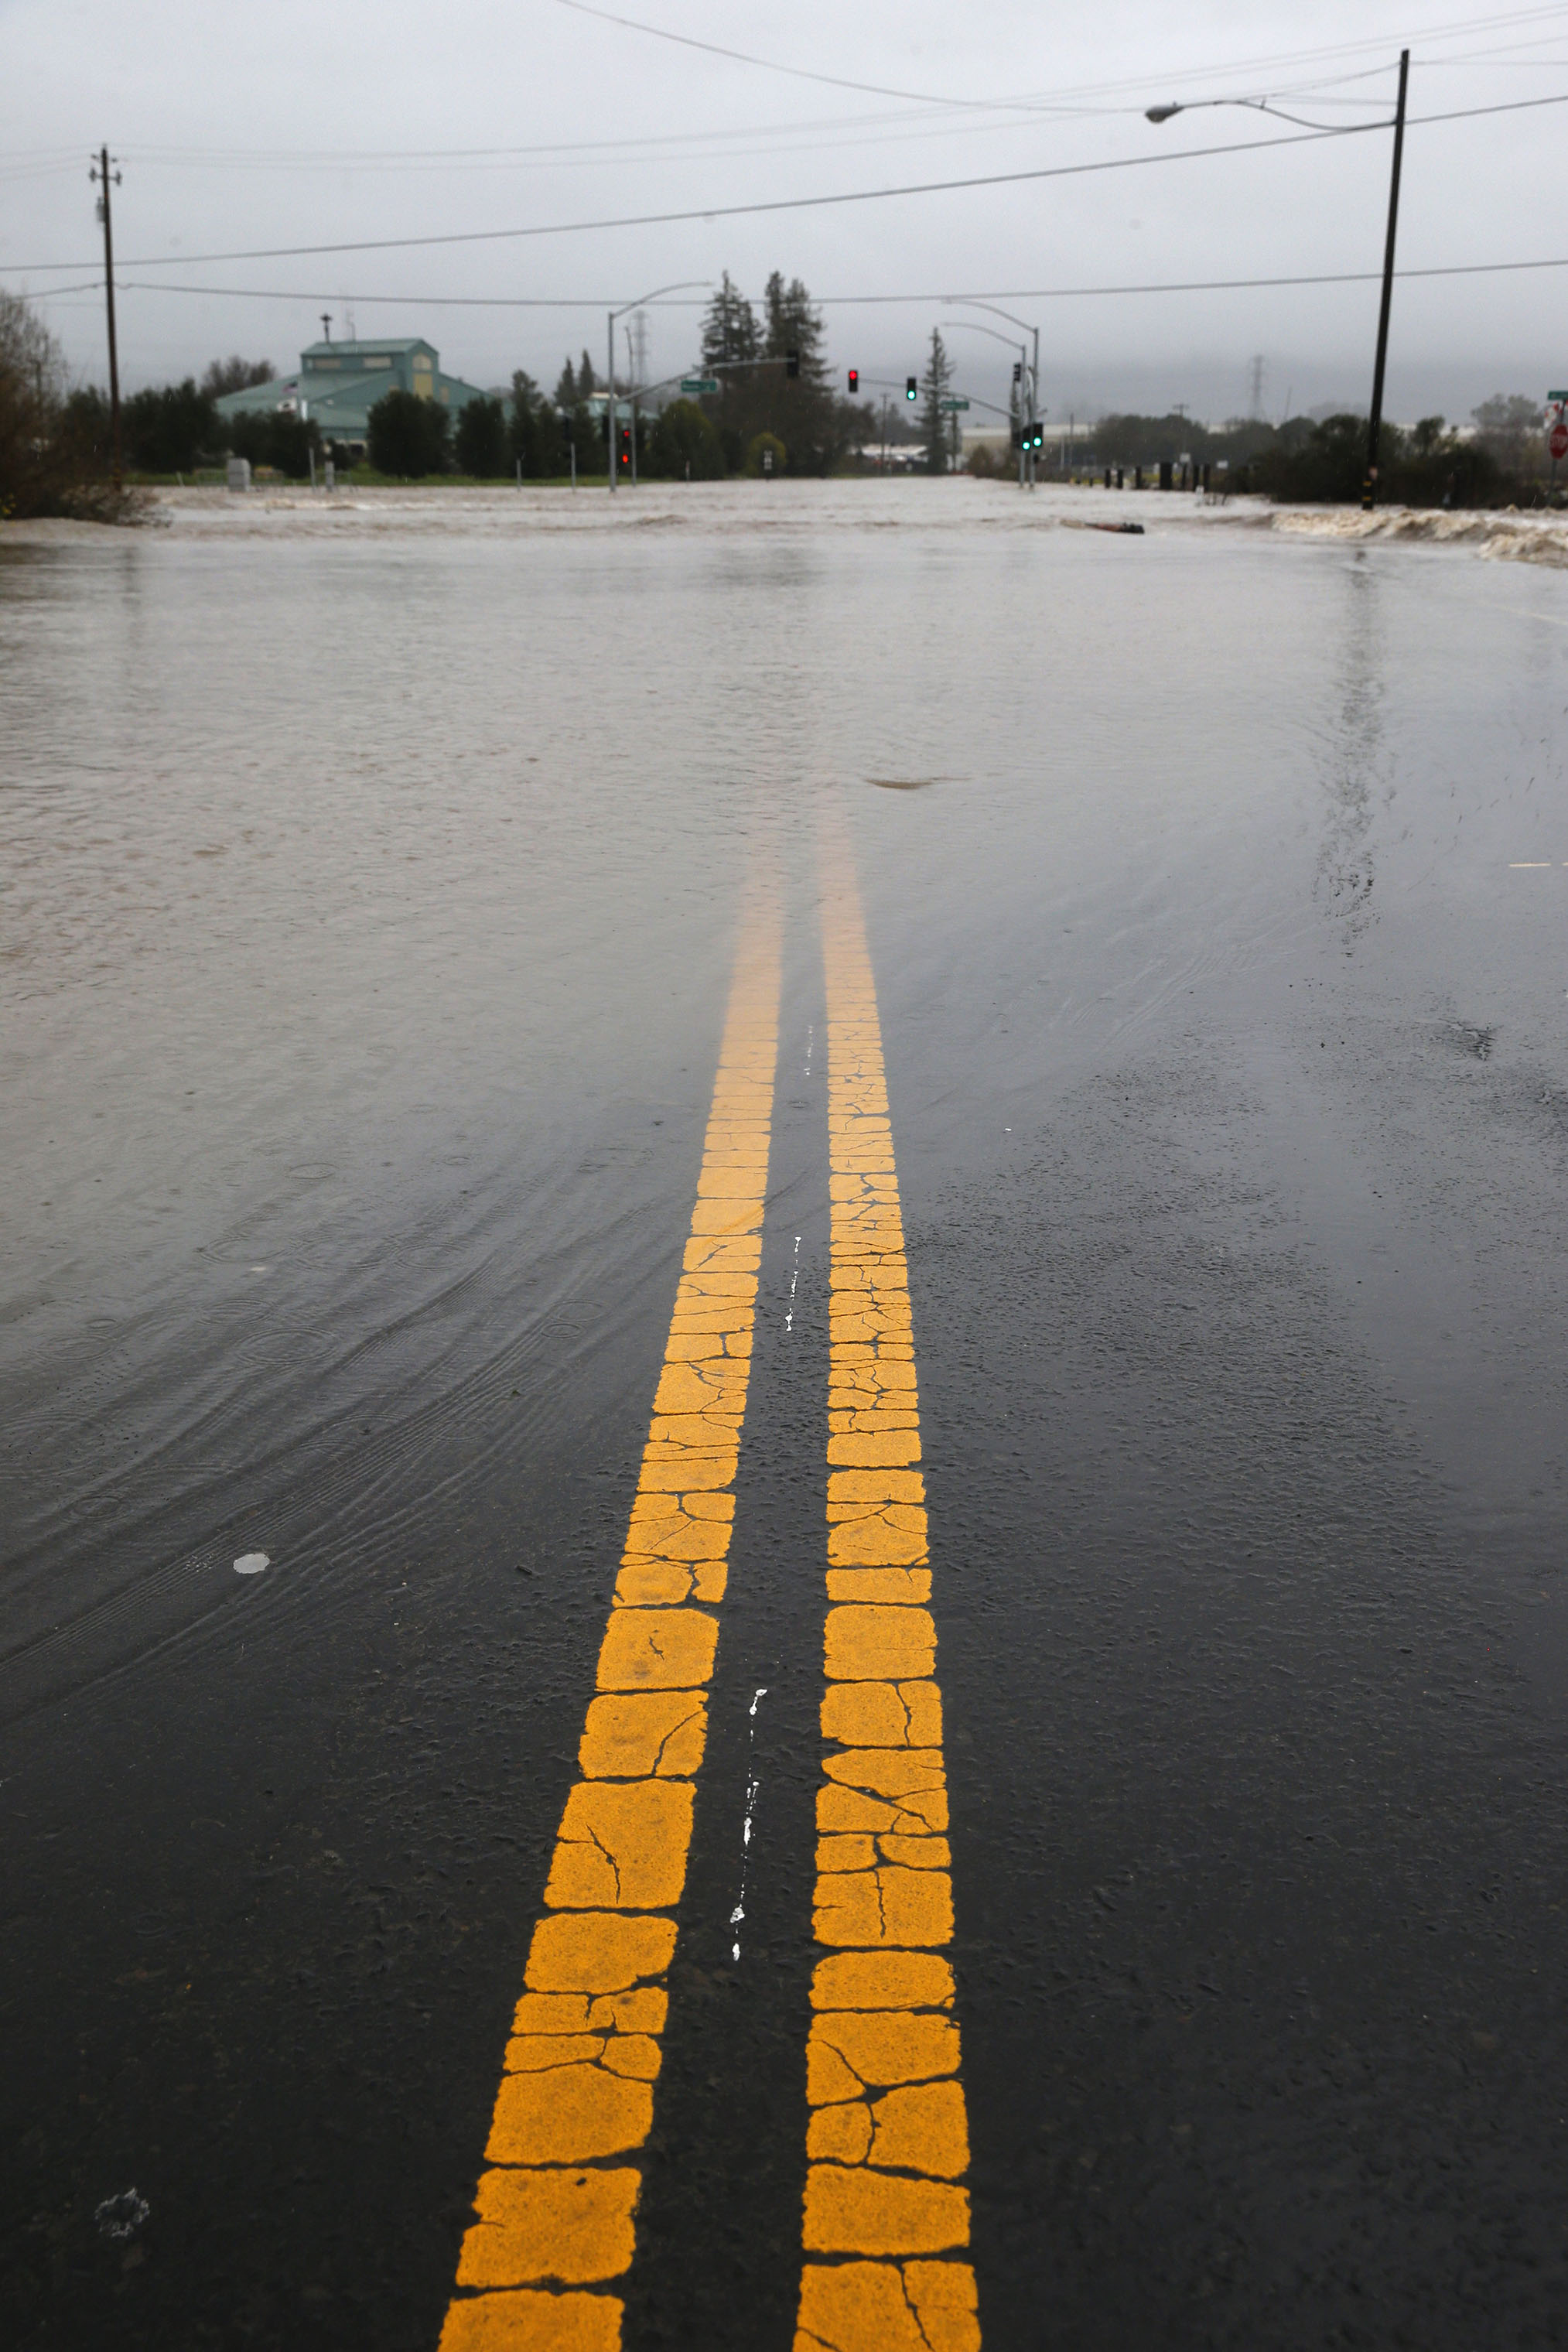 The intersection of Highways 121 and 12 are closed to traffic after the Sonoma Creek surged over its banks and flooded the roadway during the heavy rainstorm in Sonoma, California on Feb. 26, 2019.